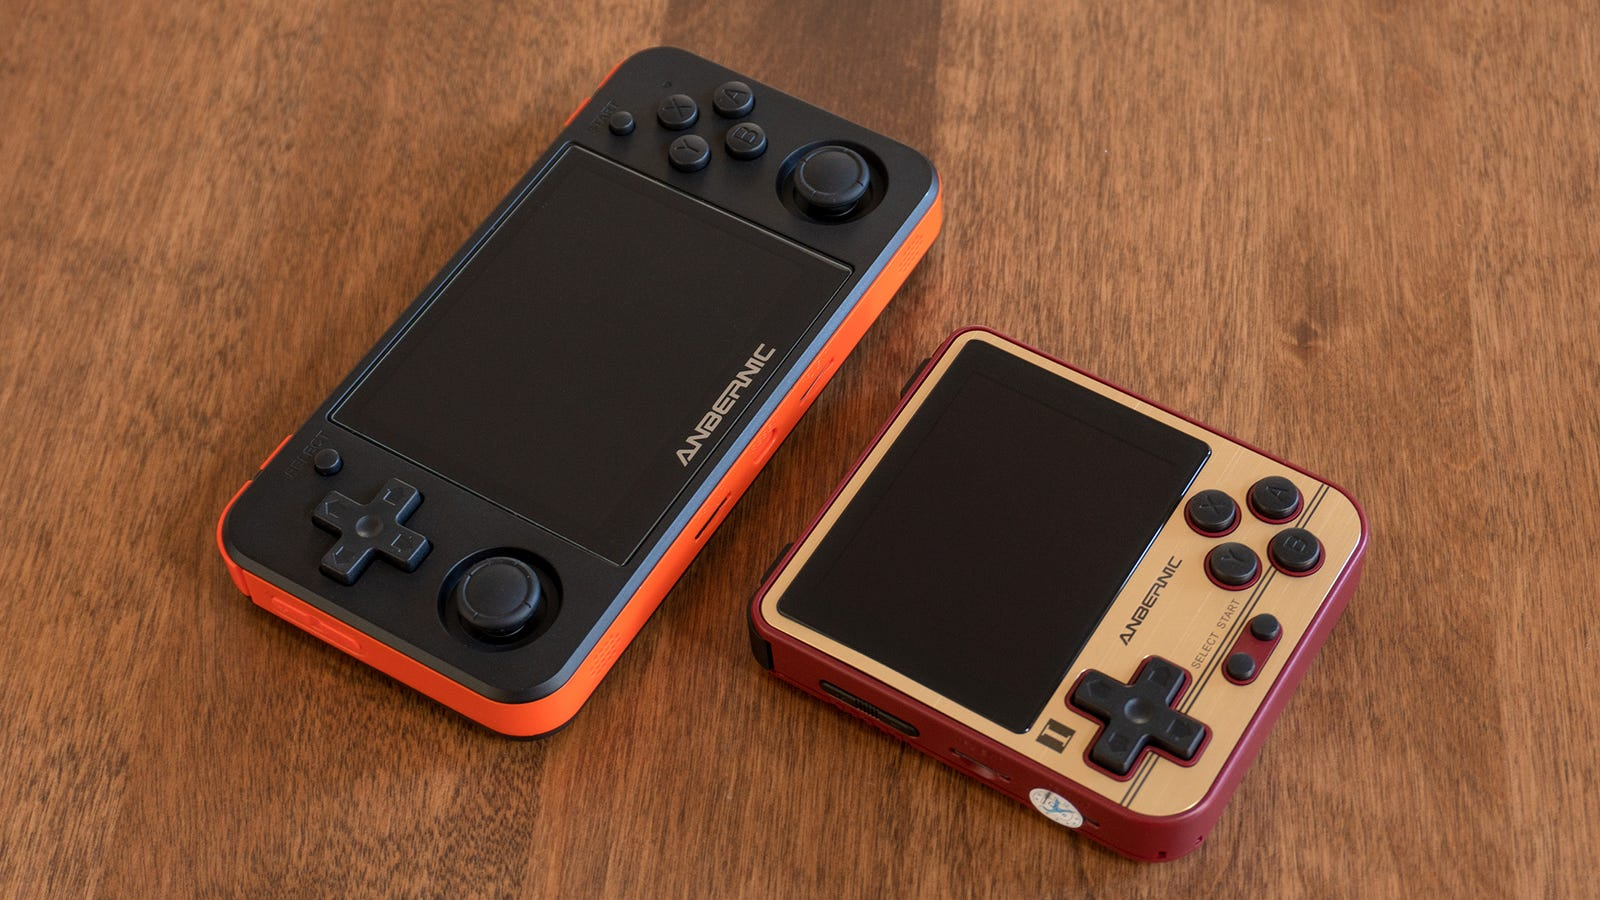 The RG280V (right) is much smaller than the RG350P (left) but runs with the same processor and RAM so it can technically play any game the larger handheld can.